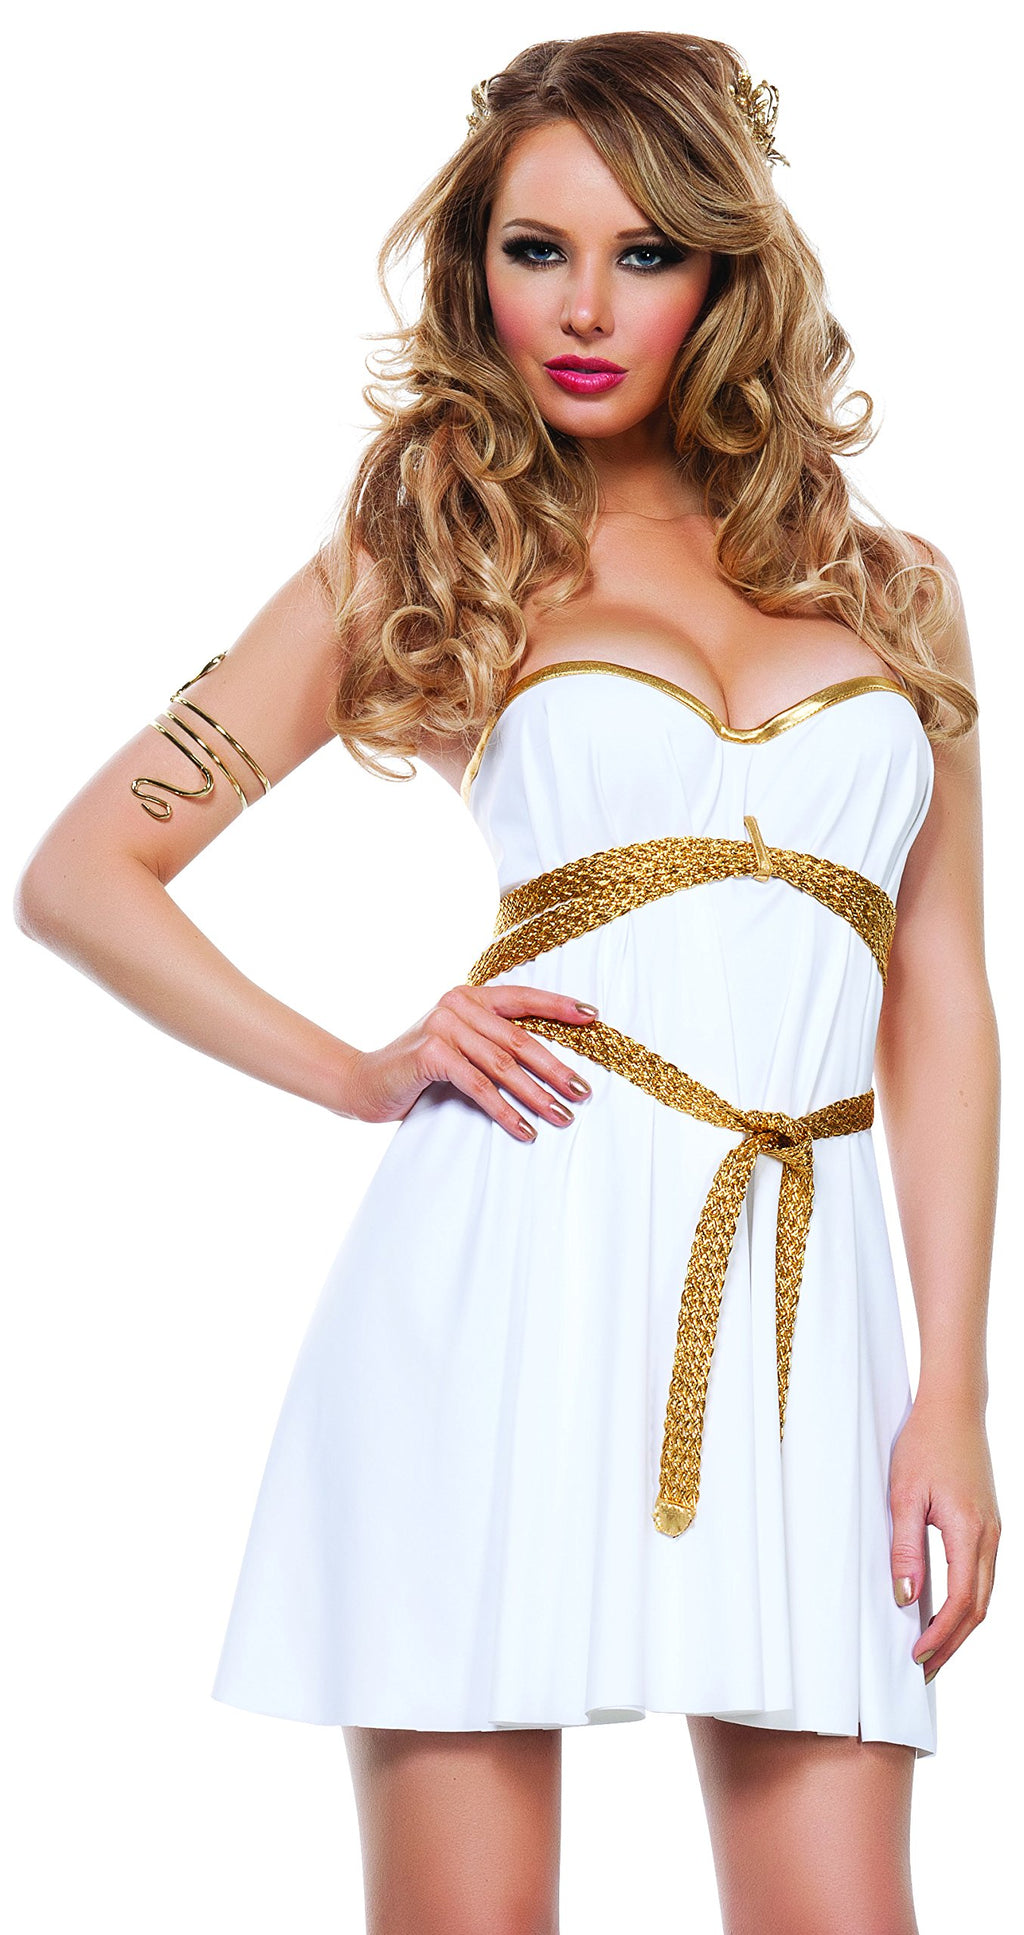 bfe2a94f6 ... Starline Women's Glamorous Greek Goddess Costume Womens Adult Sized  Costumes - Nastassy ...